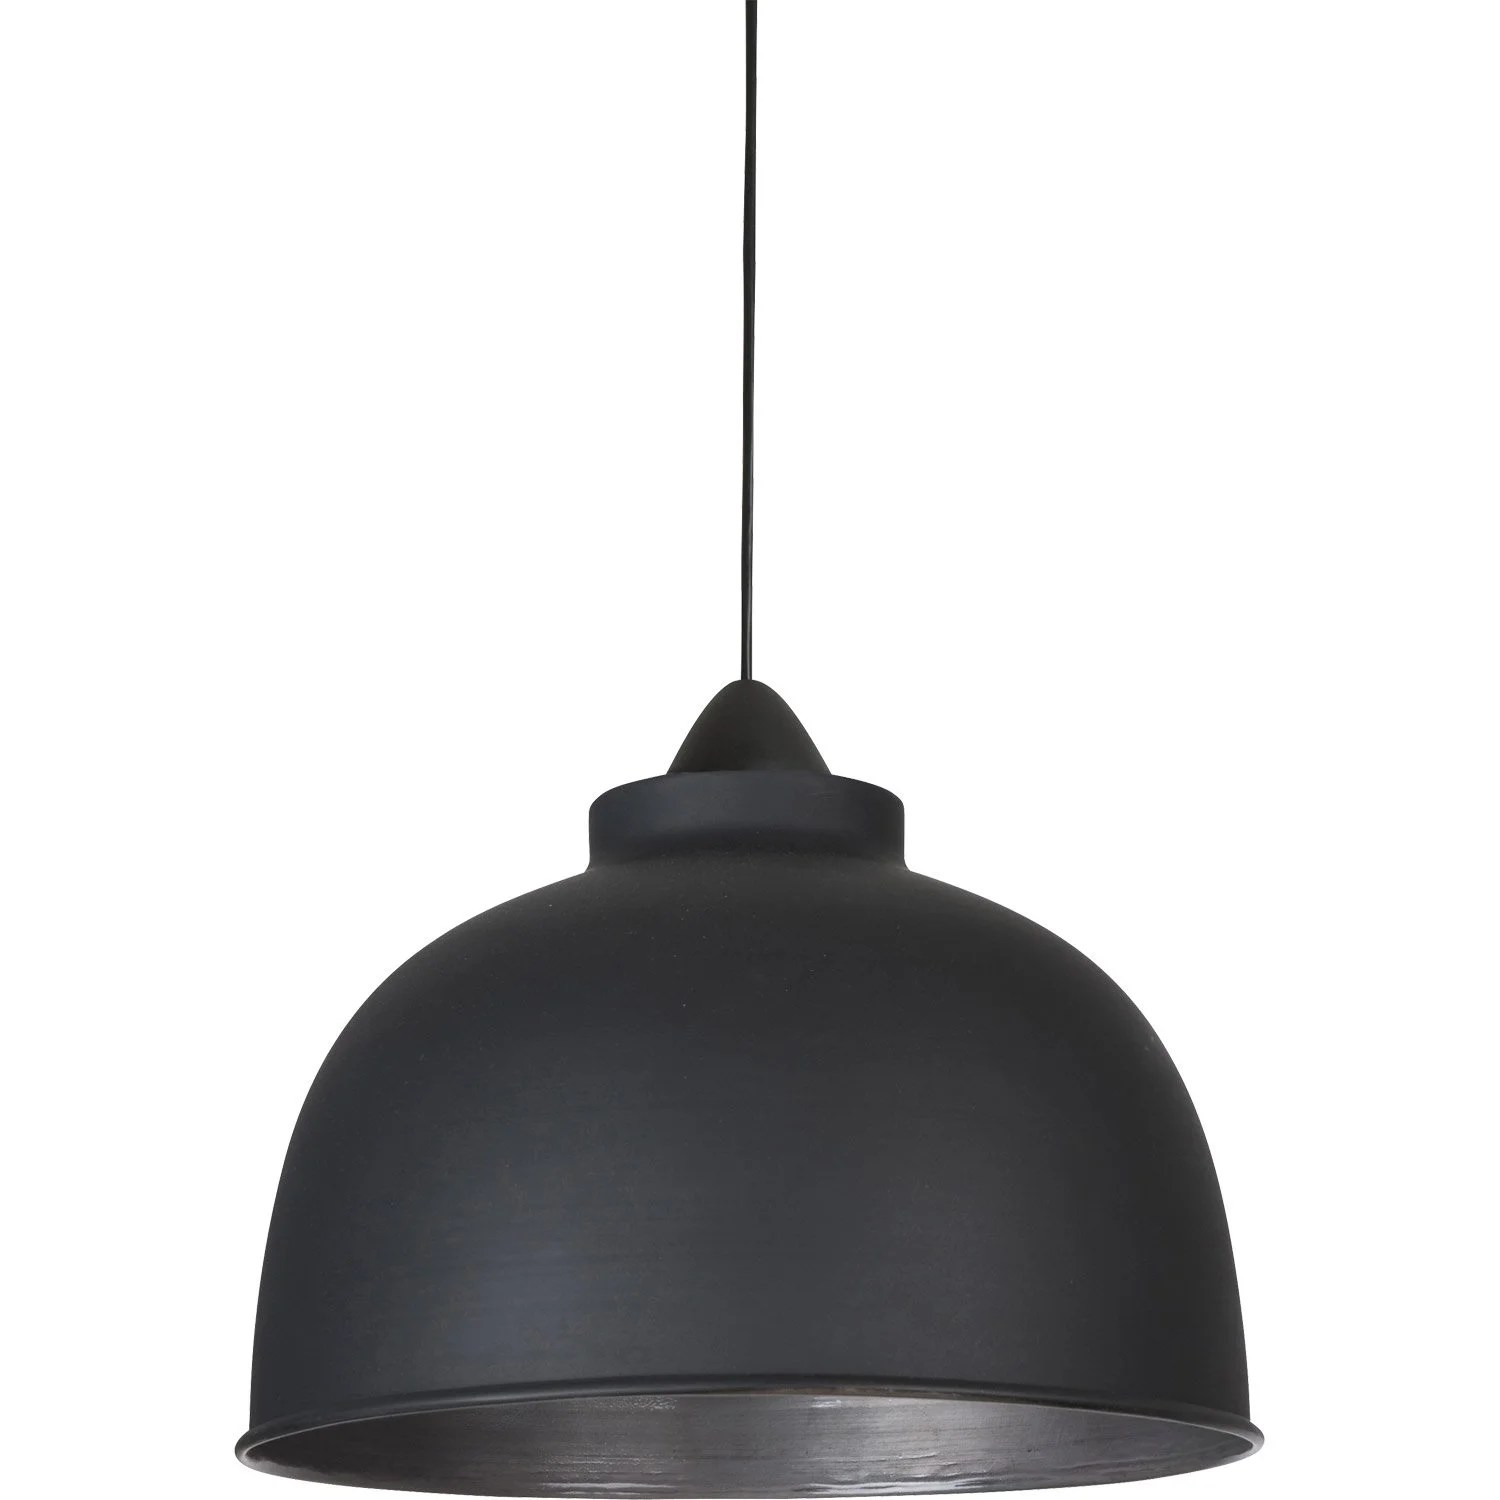 Lampe Suspension Style Industriel Suspension Luminaire Corep Style Industriel Little Dock Métal Noir Mat 1x60 W E27